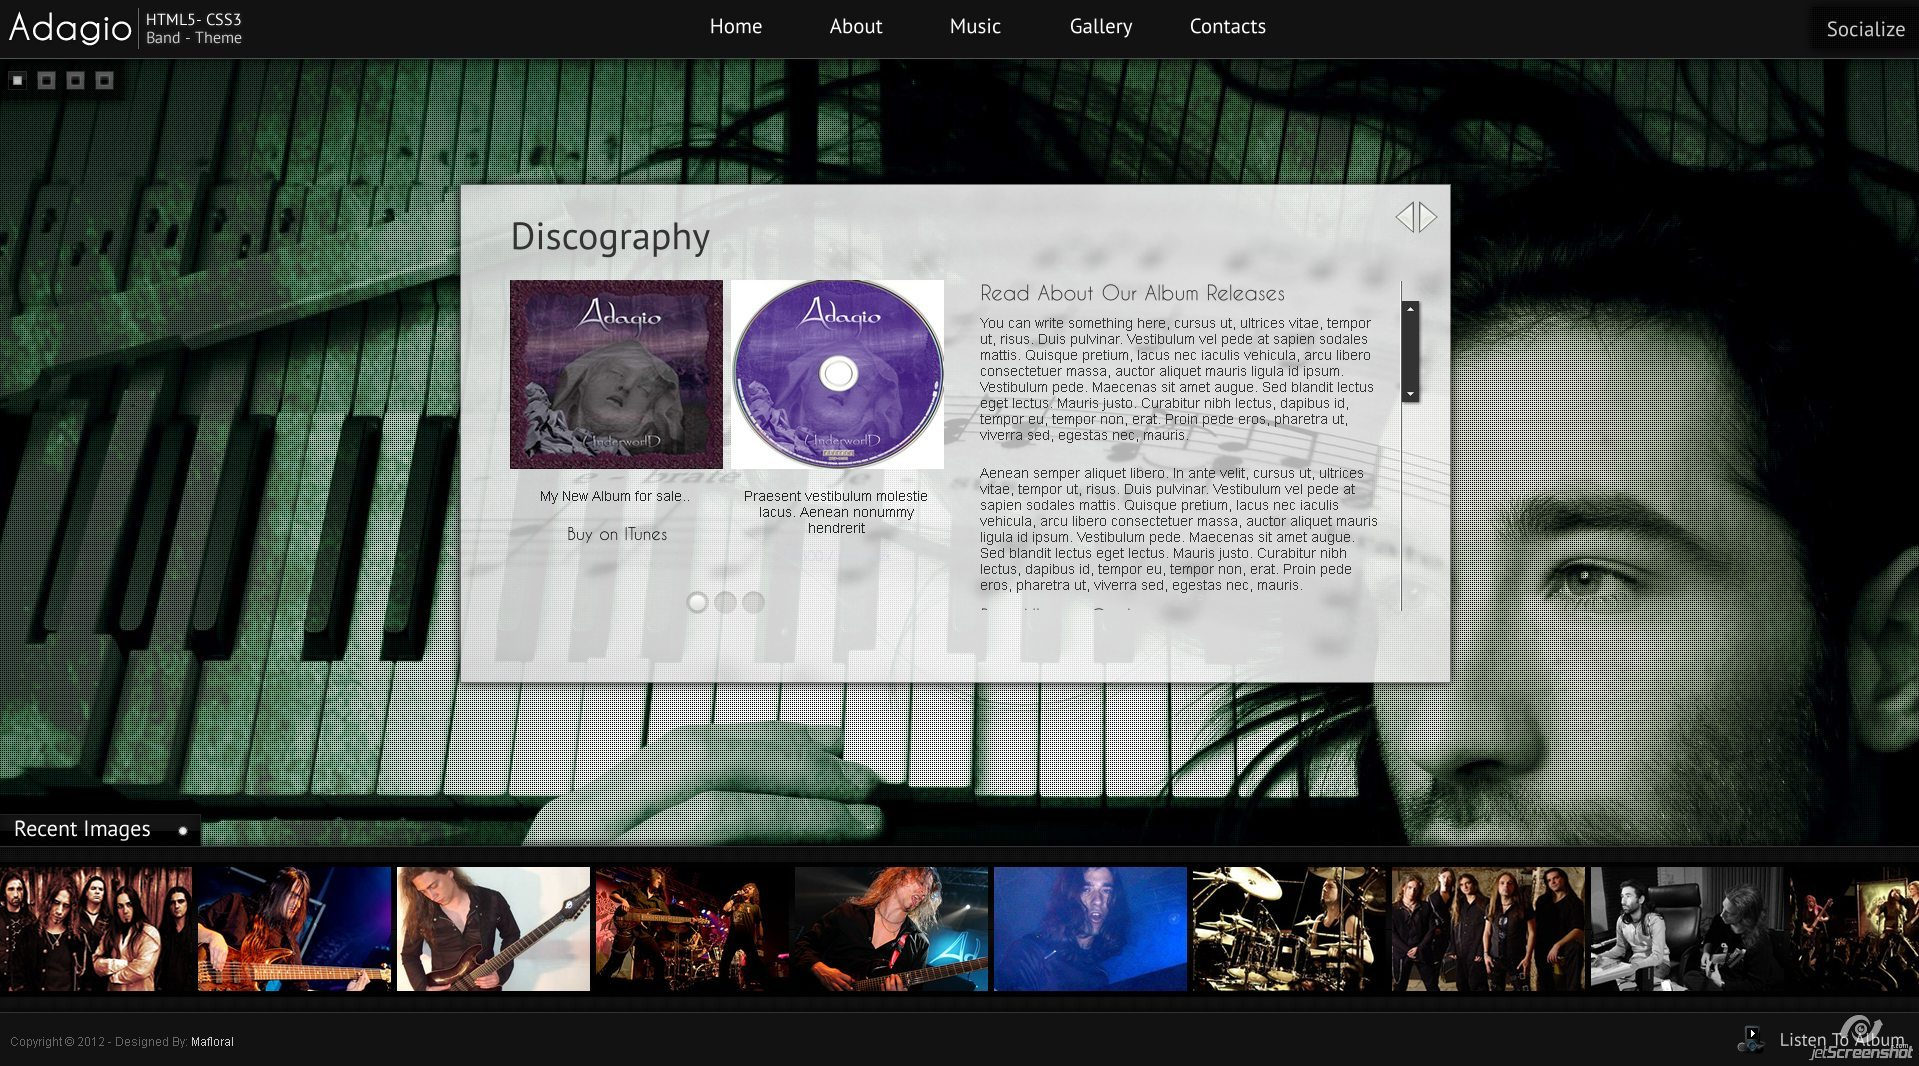 Adagio Musician Template - HTML5 - CSS3 - Discography Page